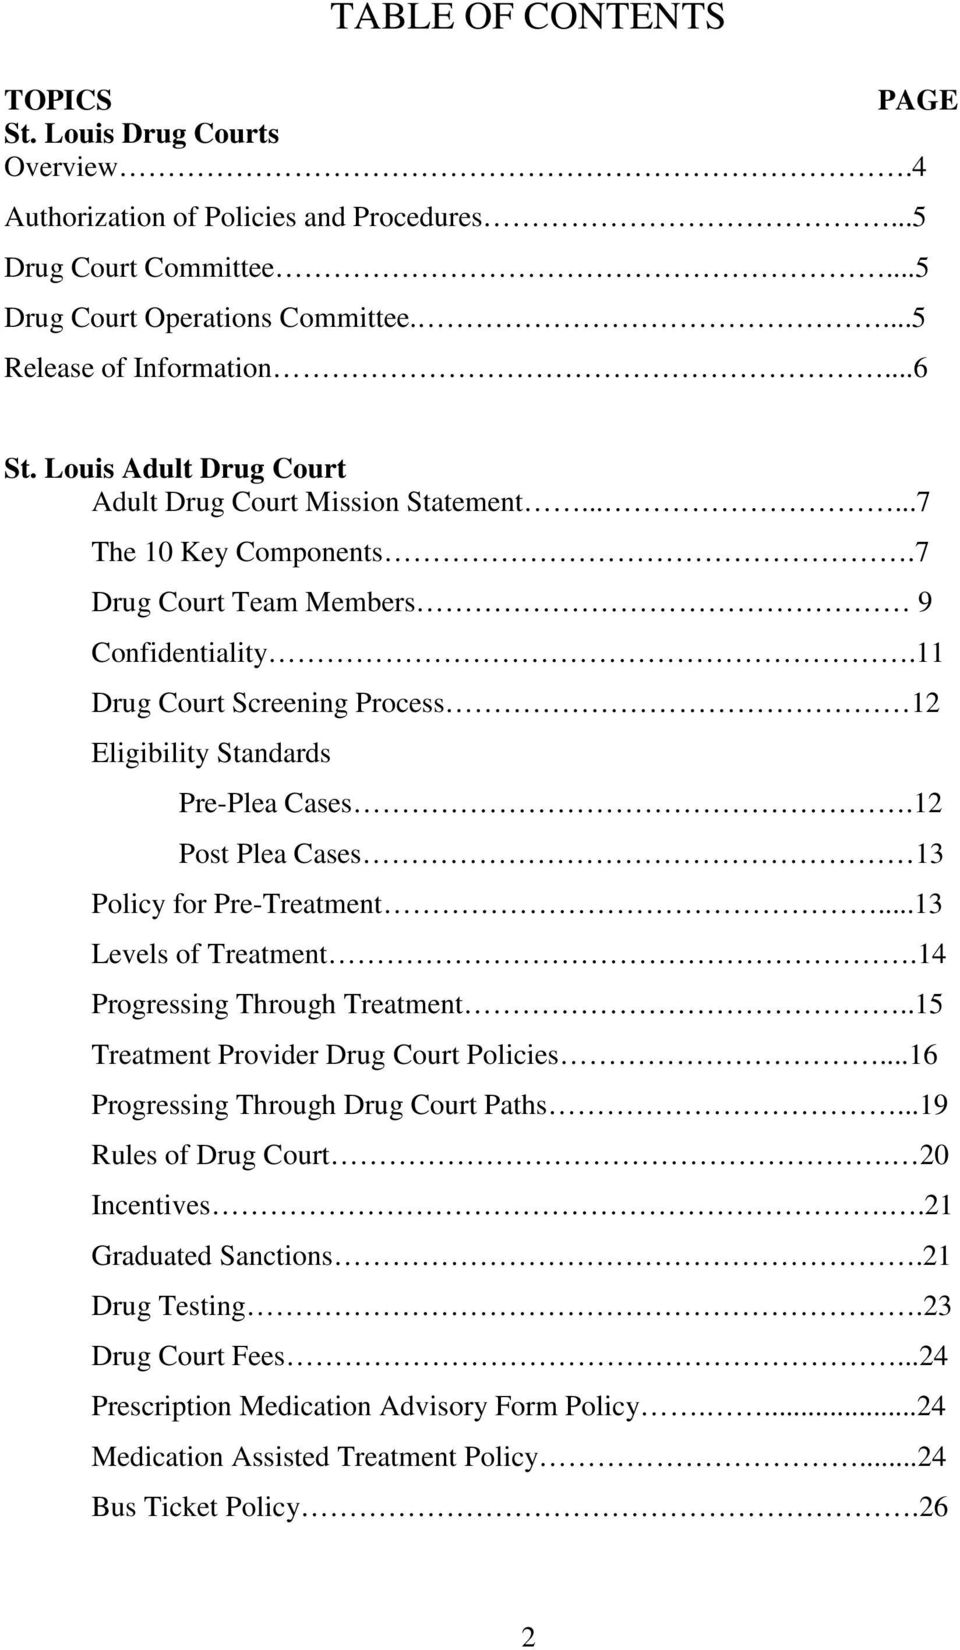 11 Drug Court Screening Process 12 Eligibility Standards Pre-Plea Cases.12 Post Plea Cases 13 Policy for Pre-Treatment...13 Levels of Treatment.14 Progressing Through Treatment.